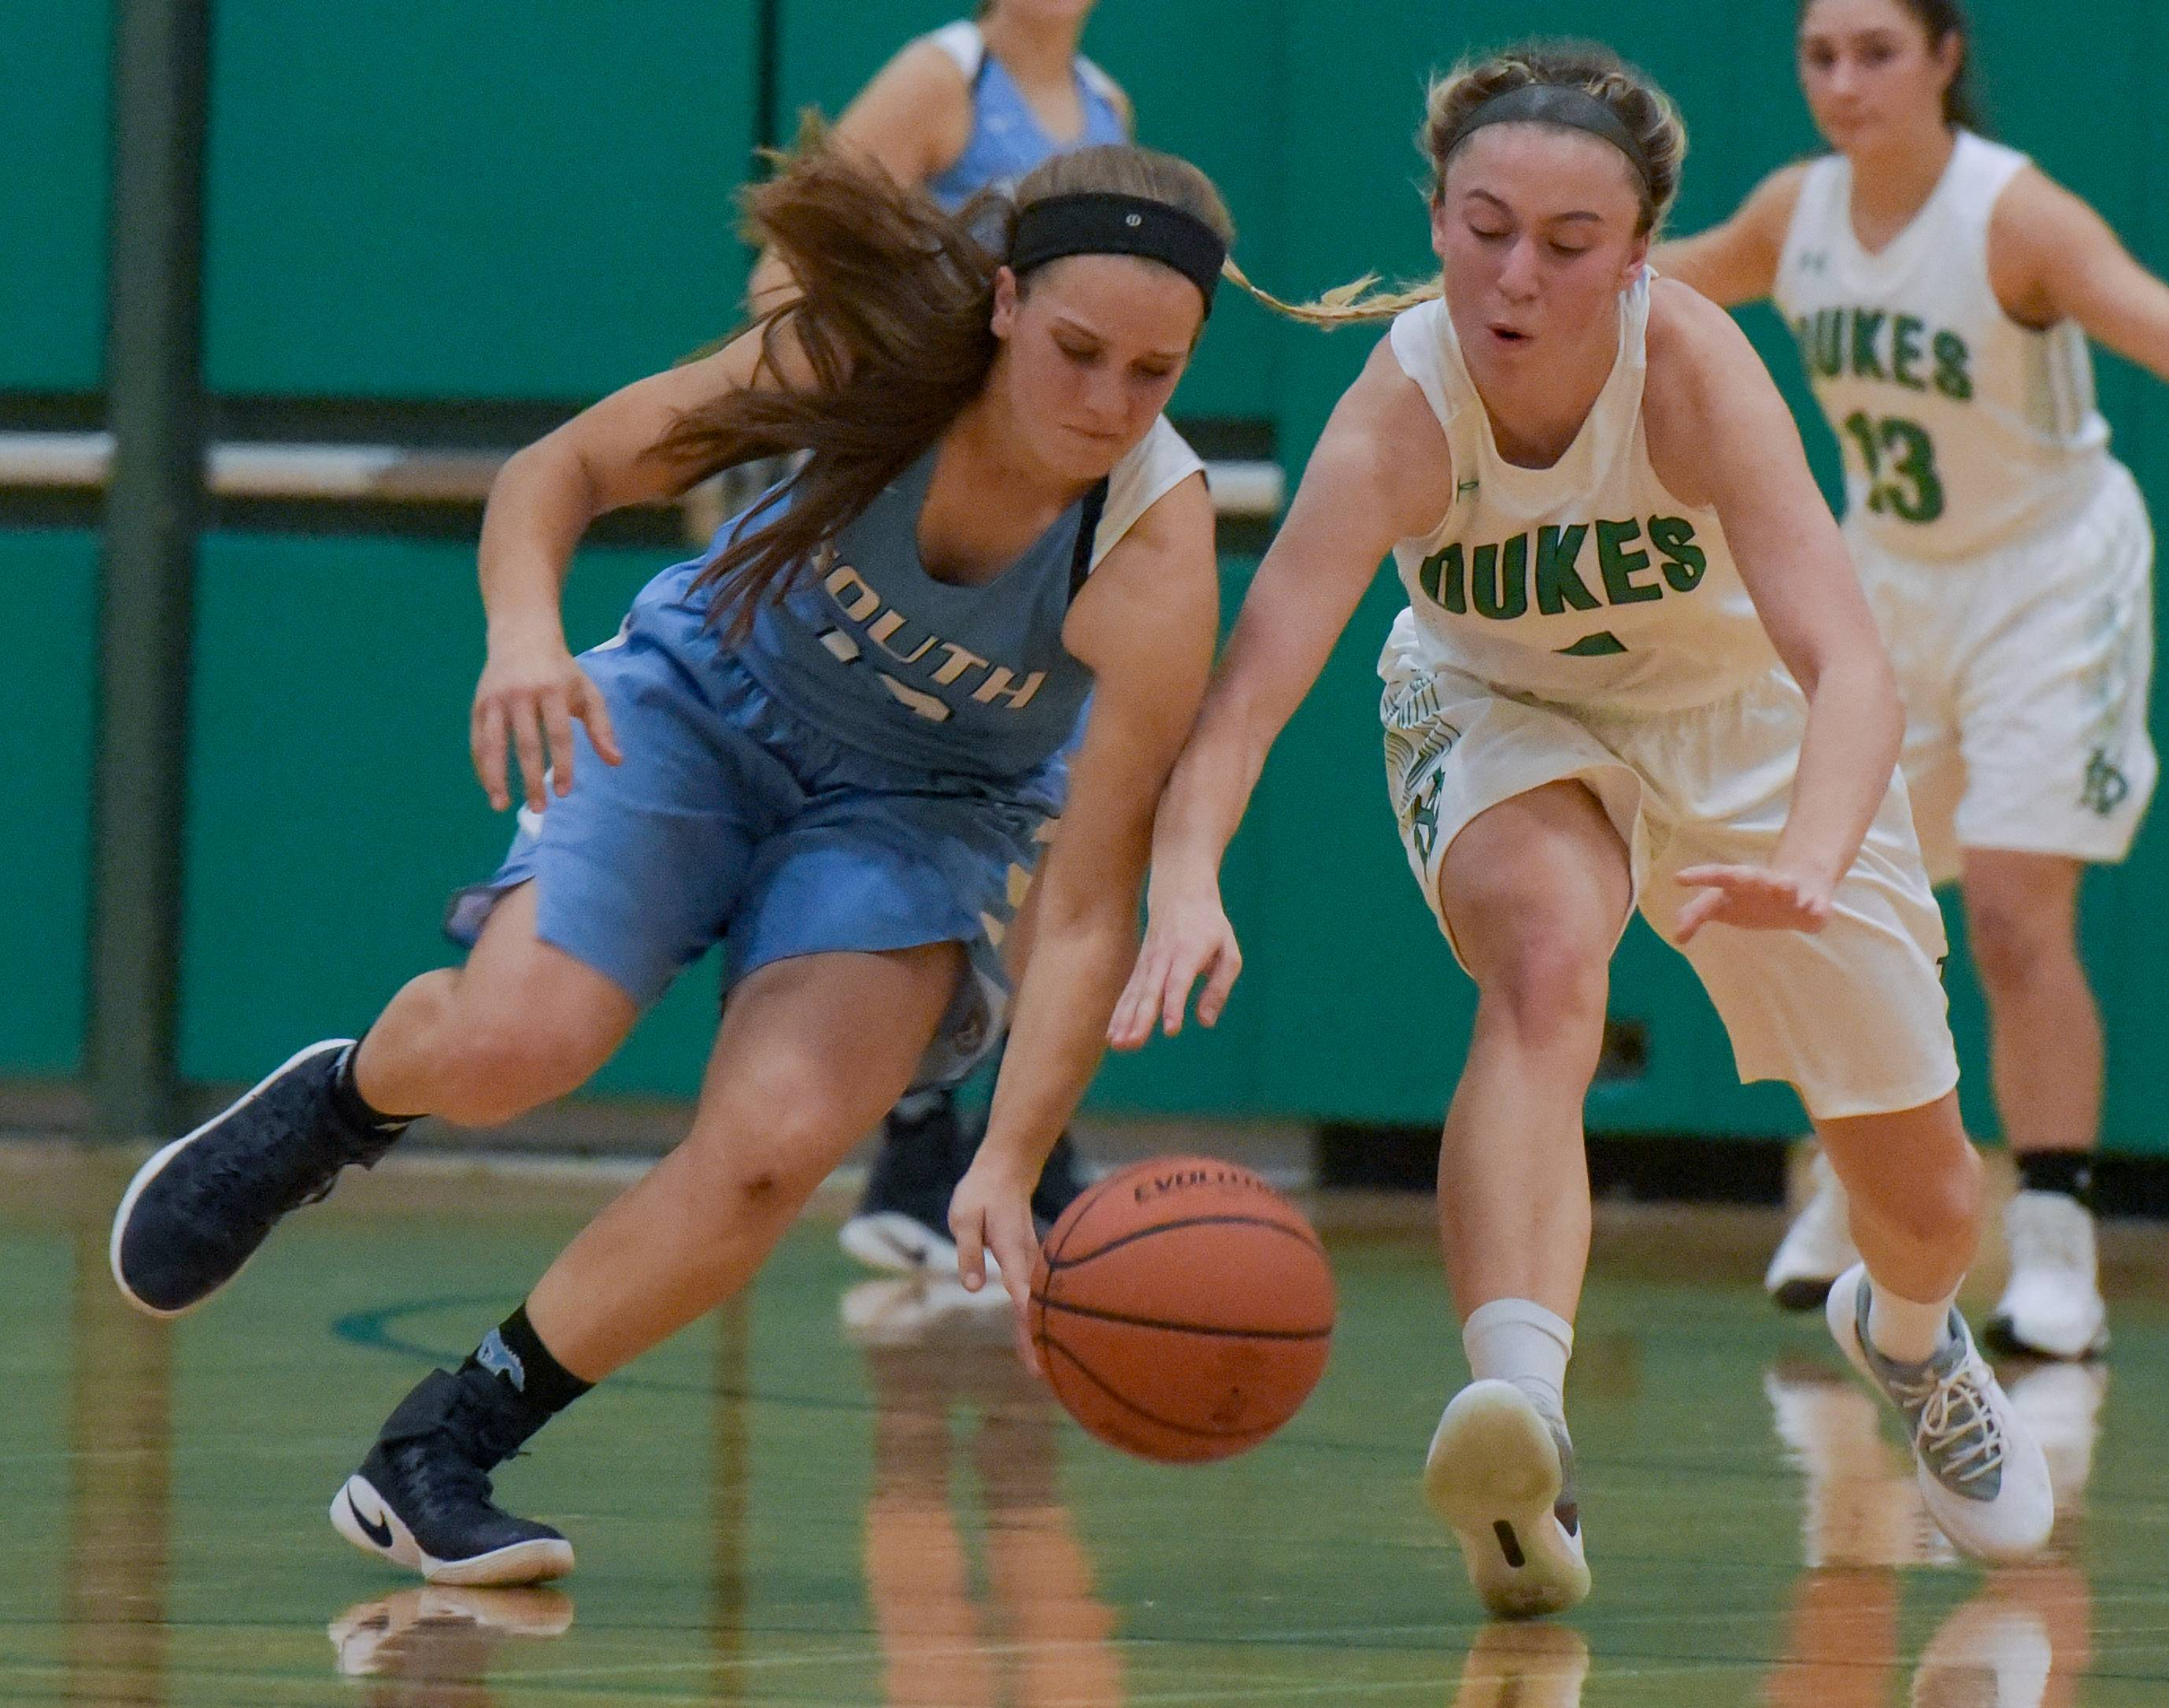 Downers Grove South's Maggie Greco (13) and York's Madison Park (1) scramble for a loose ball during the York High School Thanksgiving girls basketball tournament on November 14, 2017.